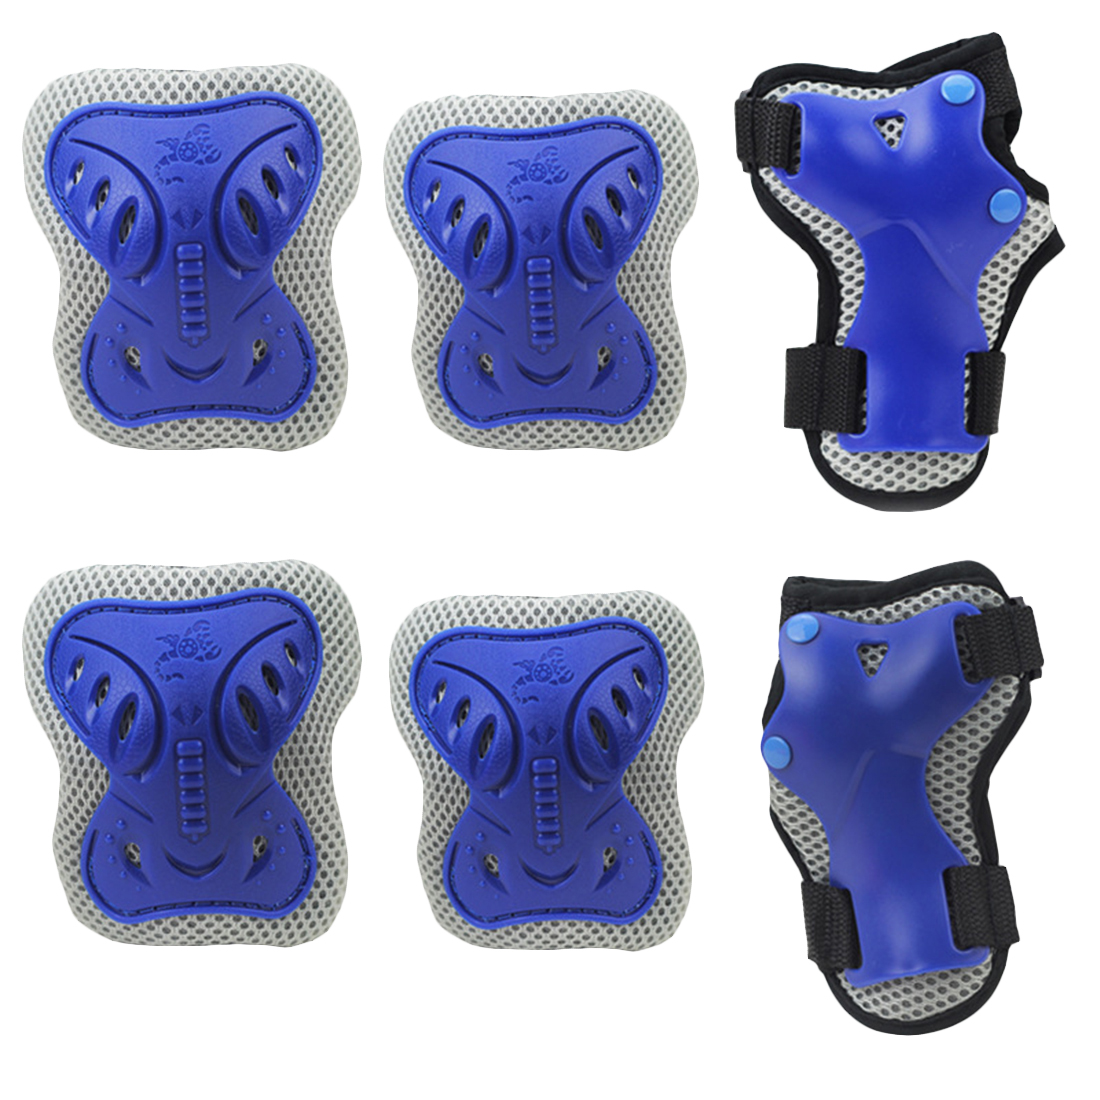 Sport Safety Protective Gear Guard Butterfly Elbow Wrist Knee Pads for Children Skateboard Skating Cycling Riding... by